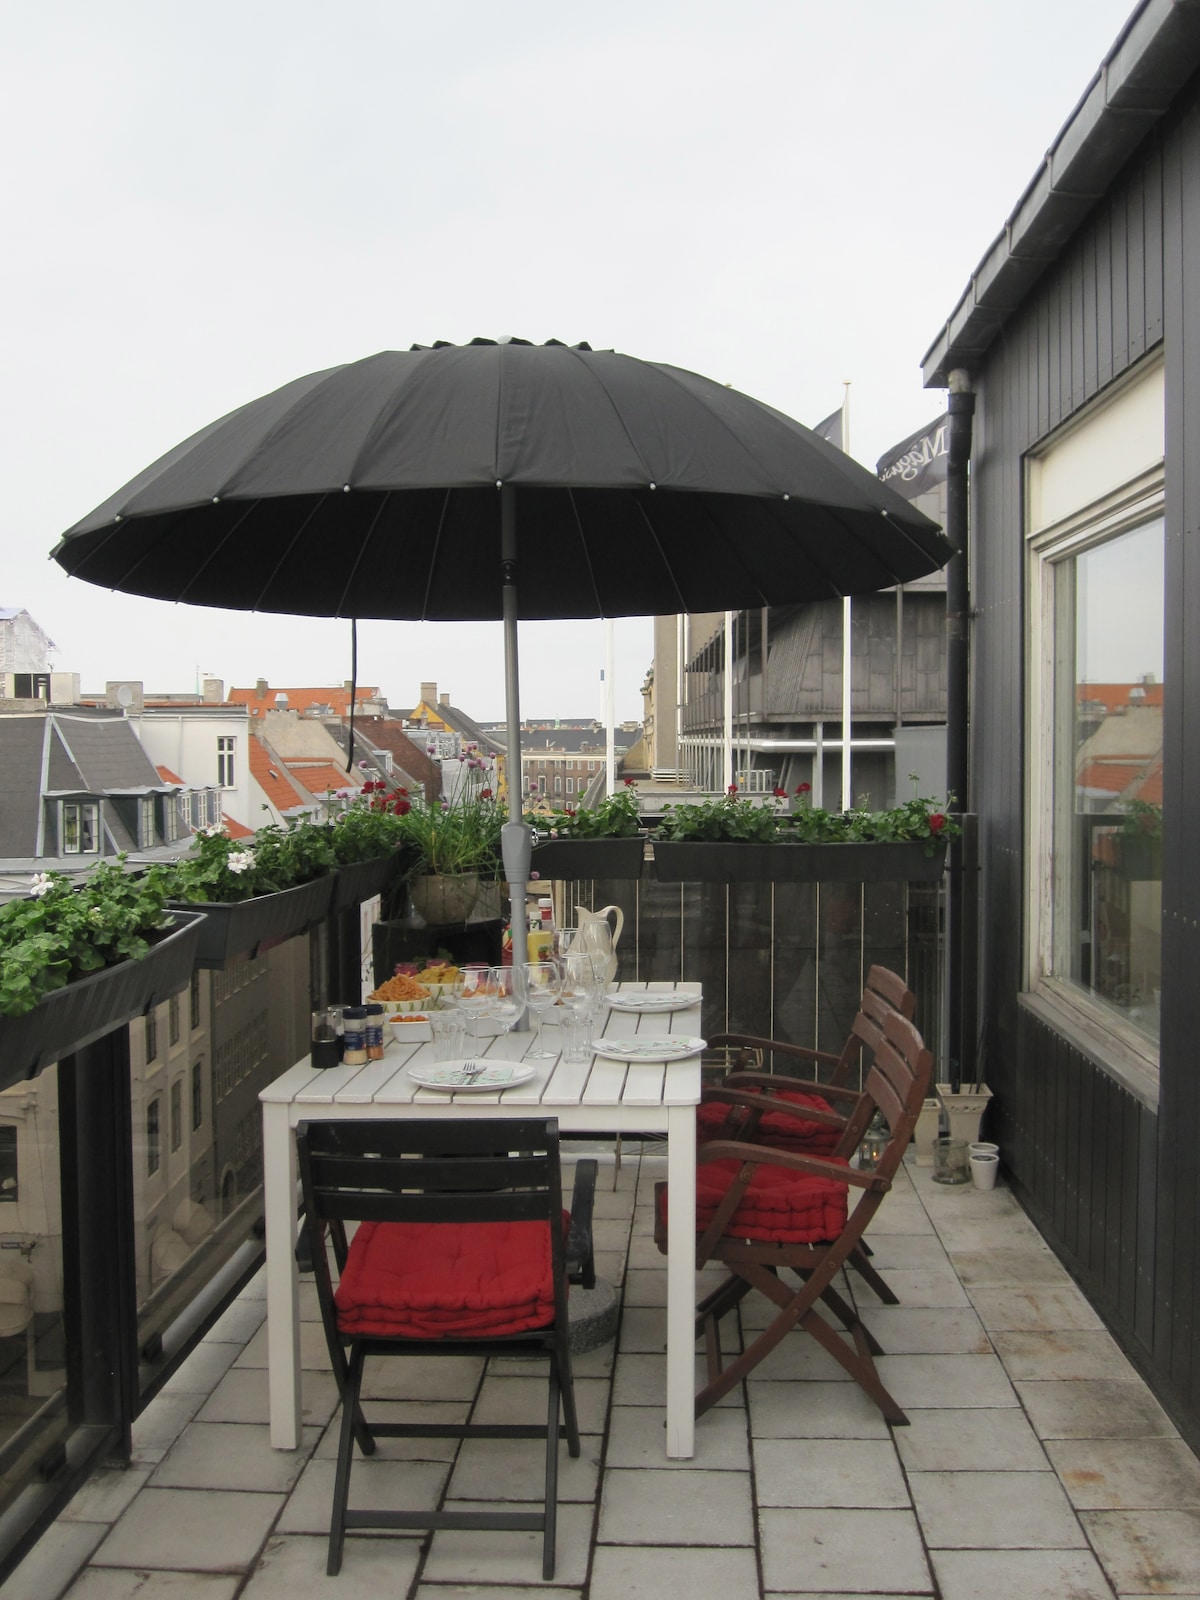 Ready for a barbecue with a view over the roofs of Copenhagen